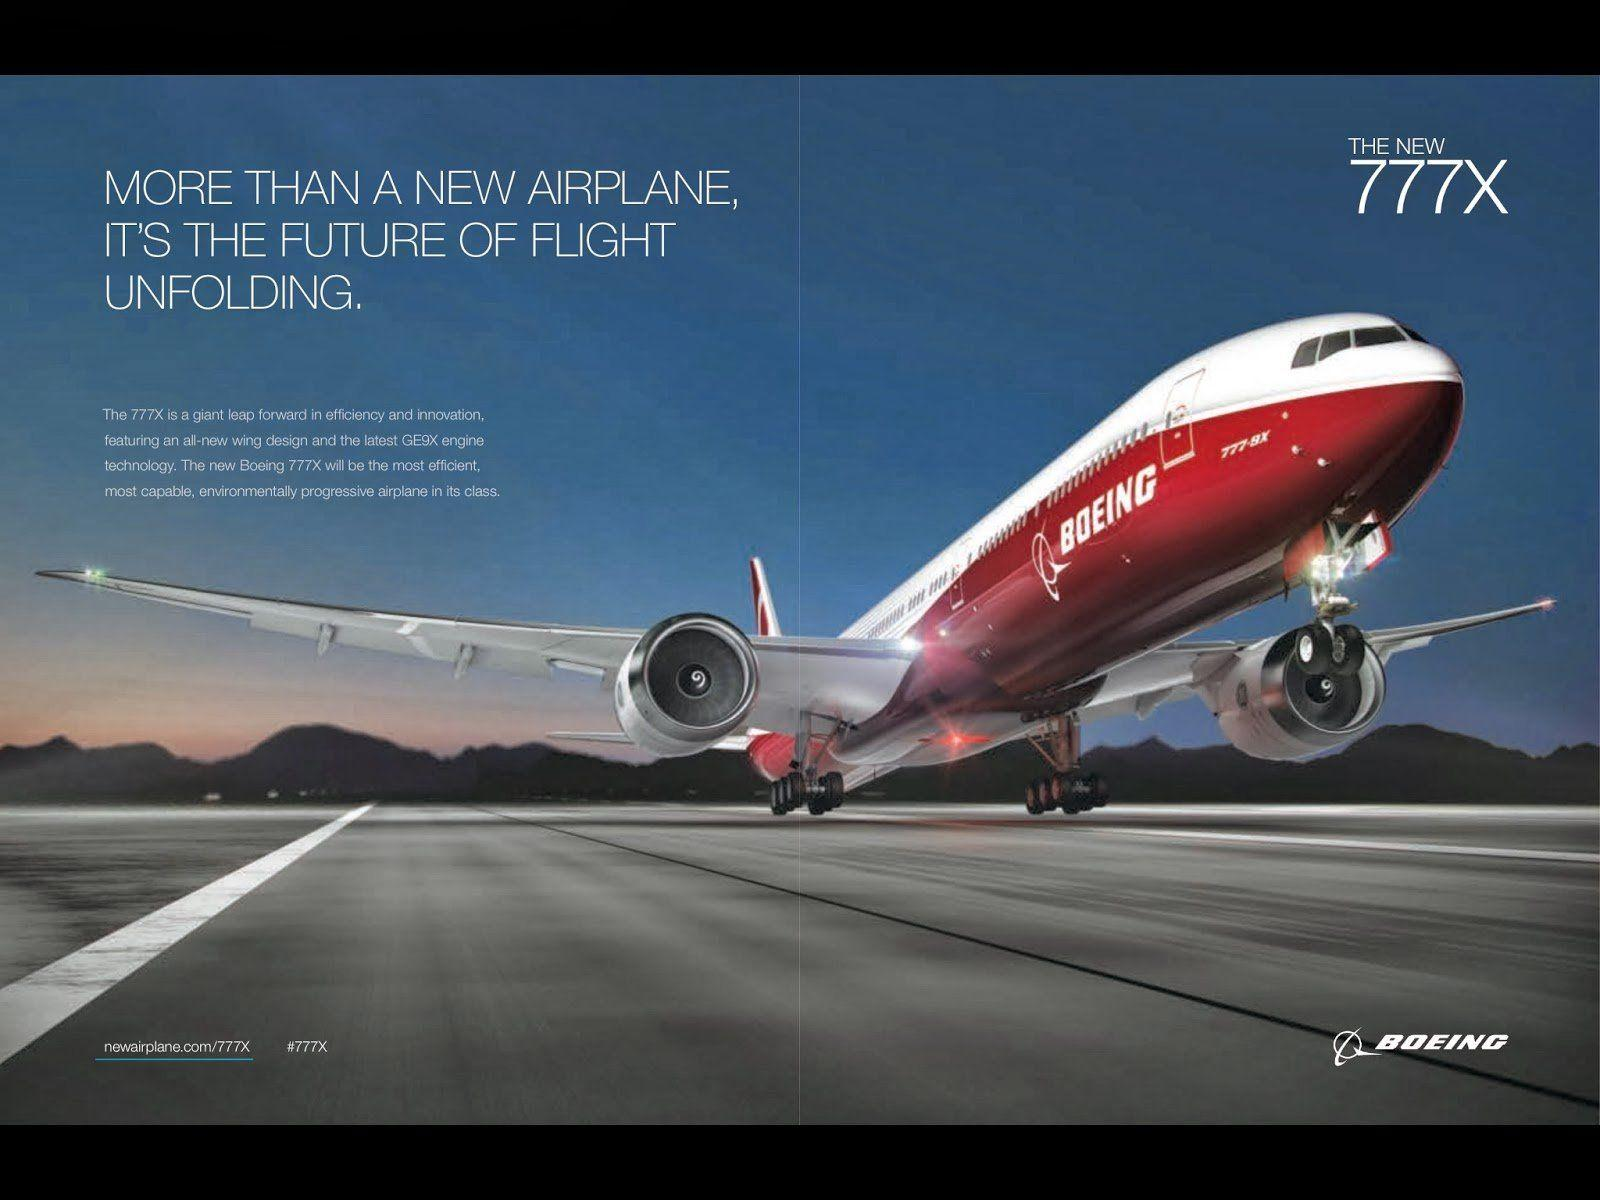 airliner aircraft airplane jet transport 777 wallpapers BOEING 777x